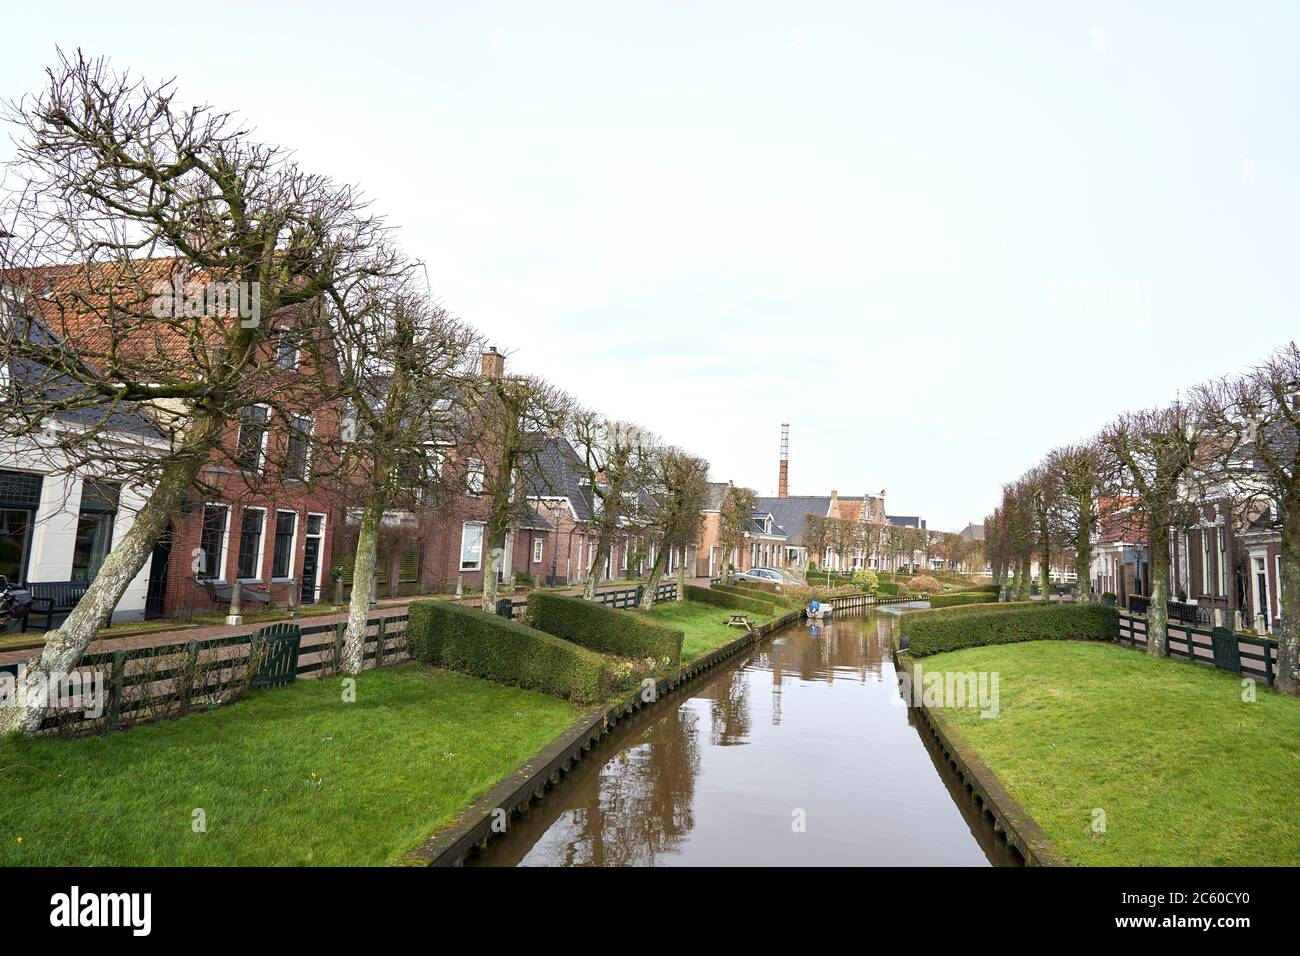 Ijlst, Friesland, Netherlands. Stock Photo